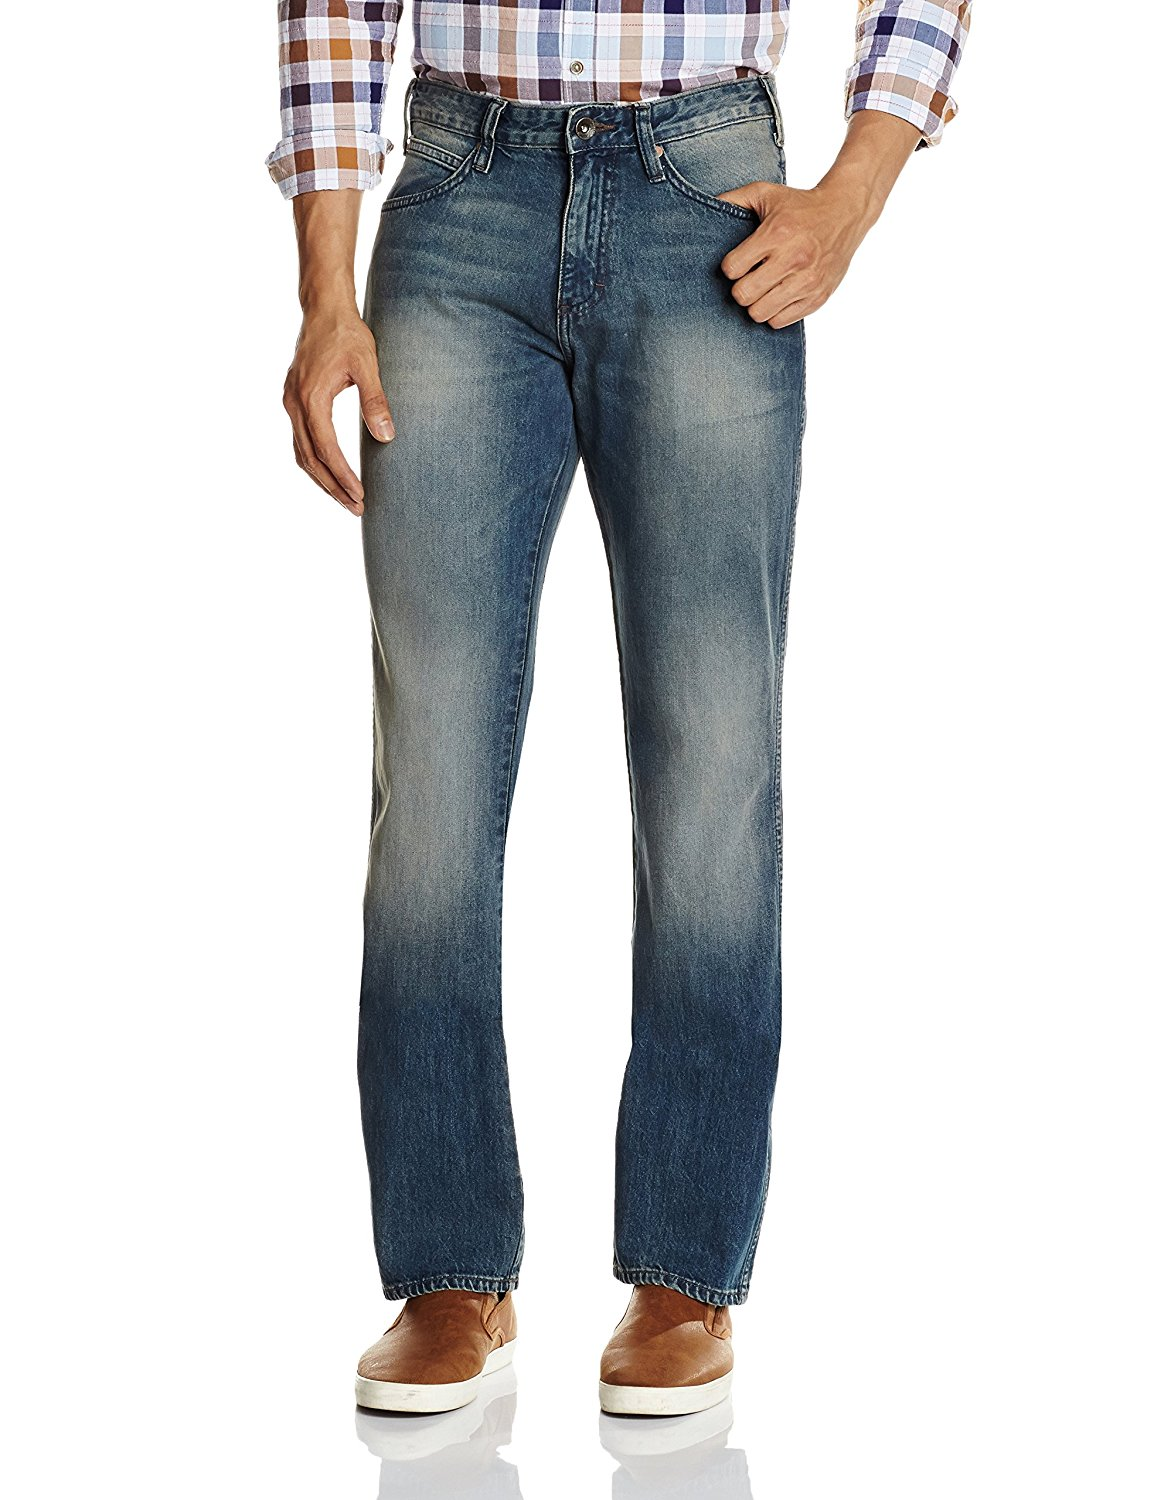 Amazon - Buy Wrangler Men's Cotton Jeans in 80% off